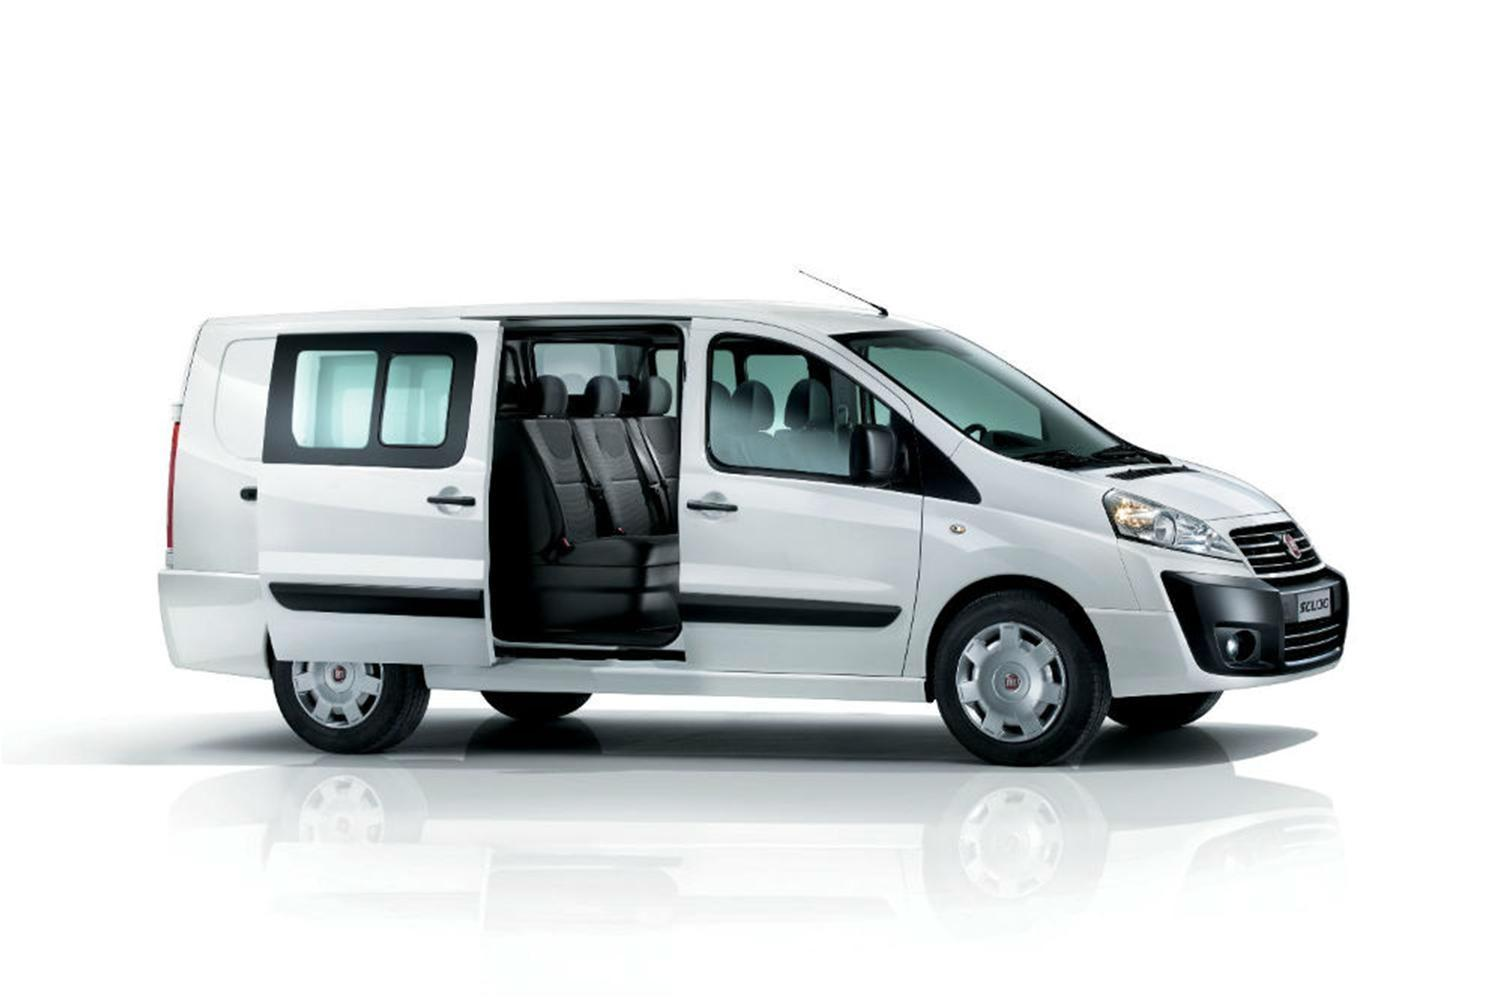 Exciting New Fiat Vans Lined up for CV Show 2013